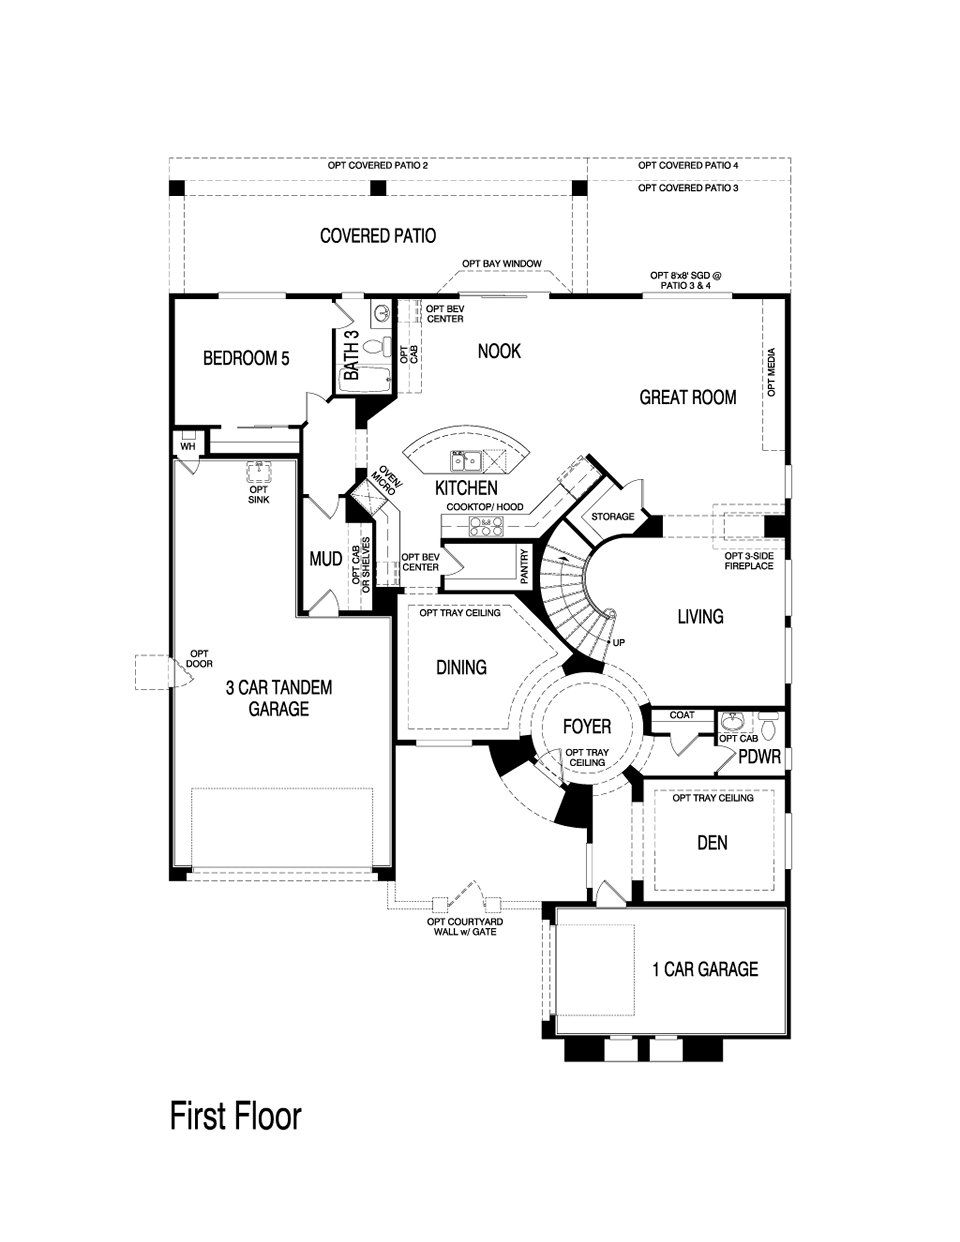 Pulte Homes Aspen Floor Plan Via